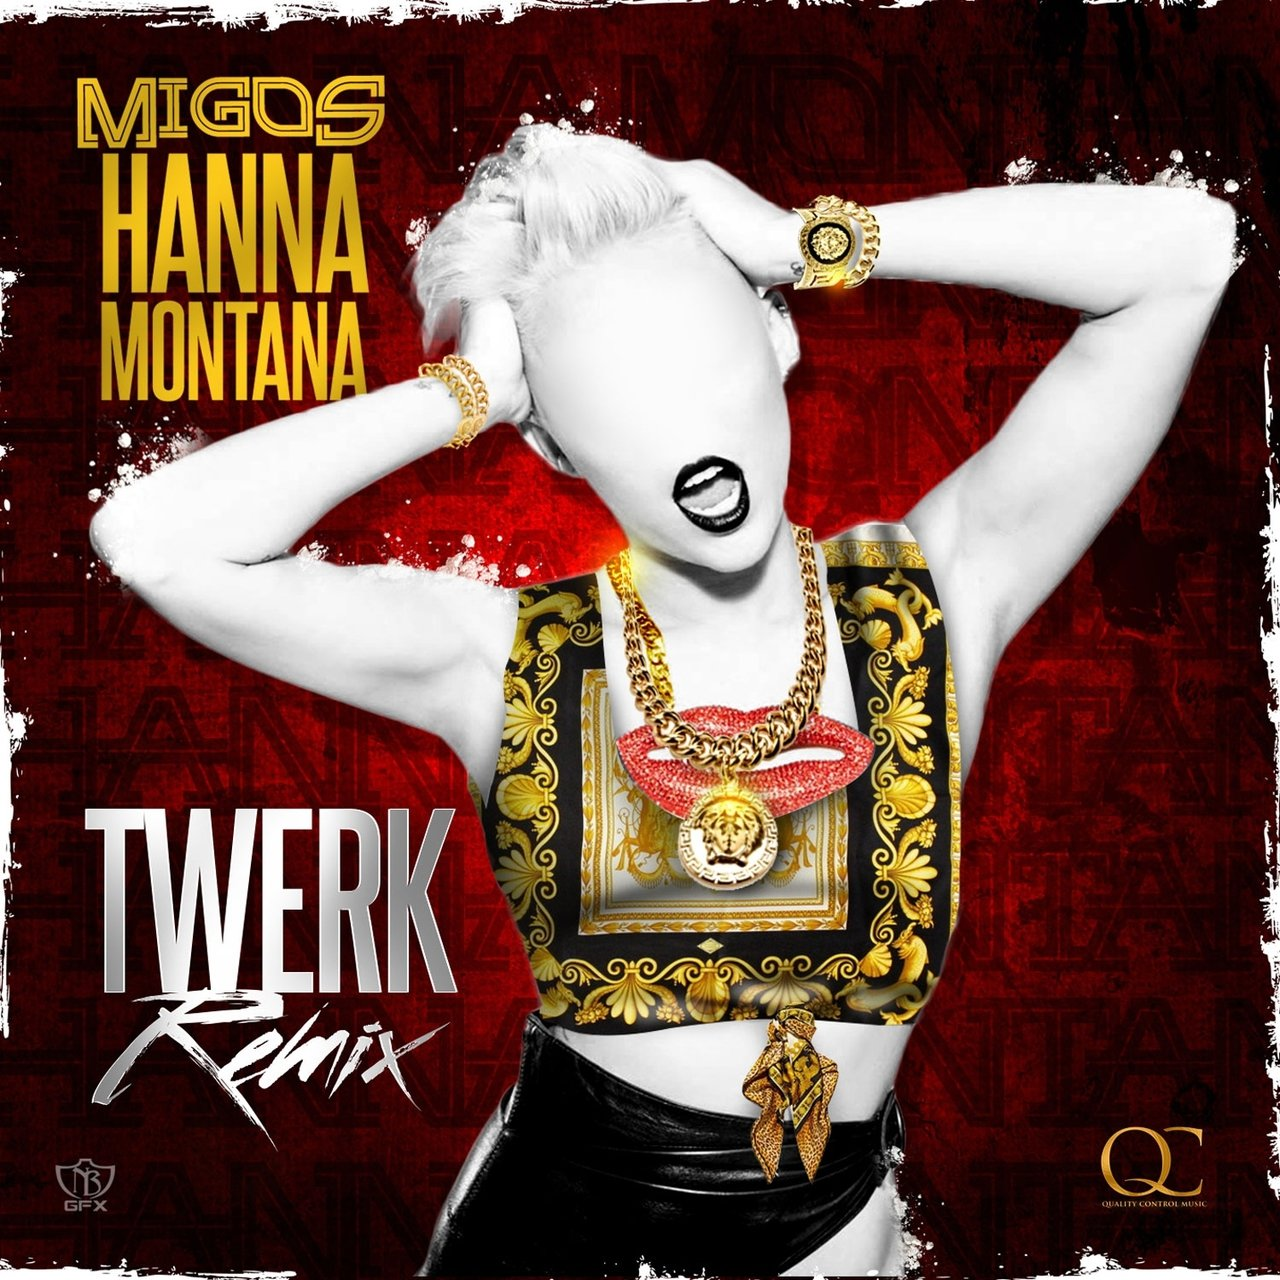 Hannah Montana (Twerk Remix) - Single